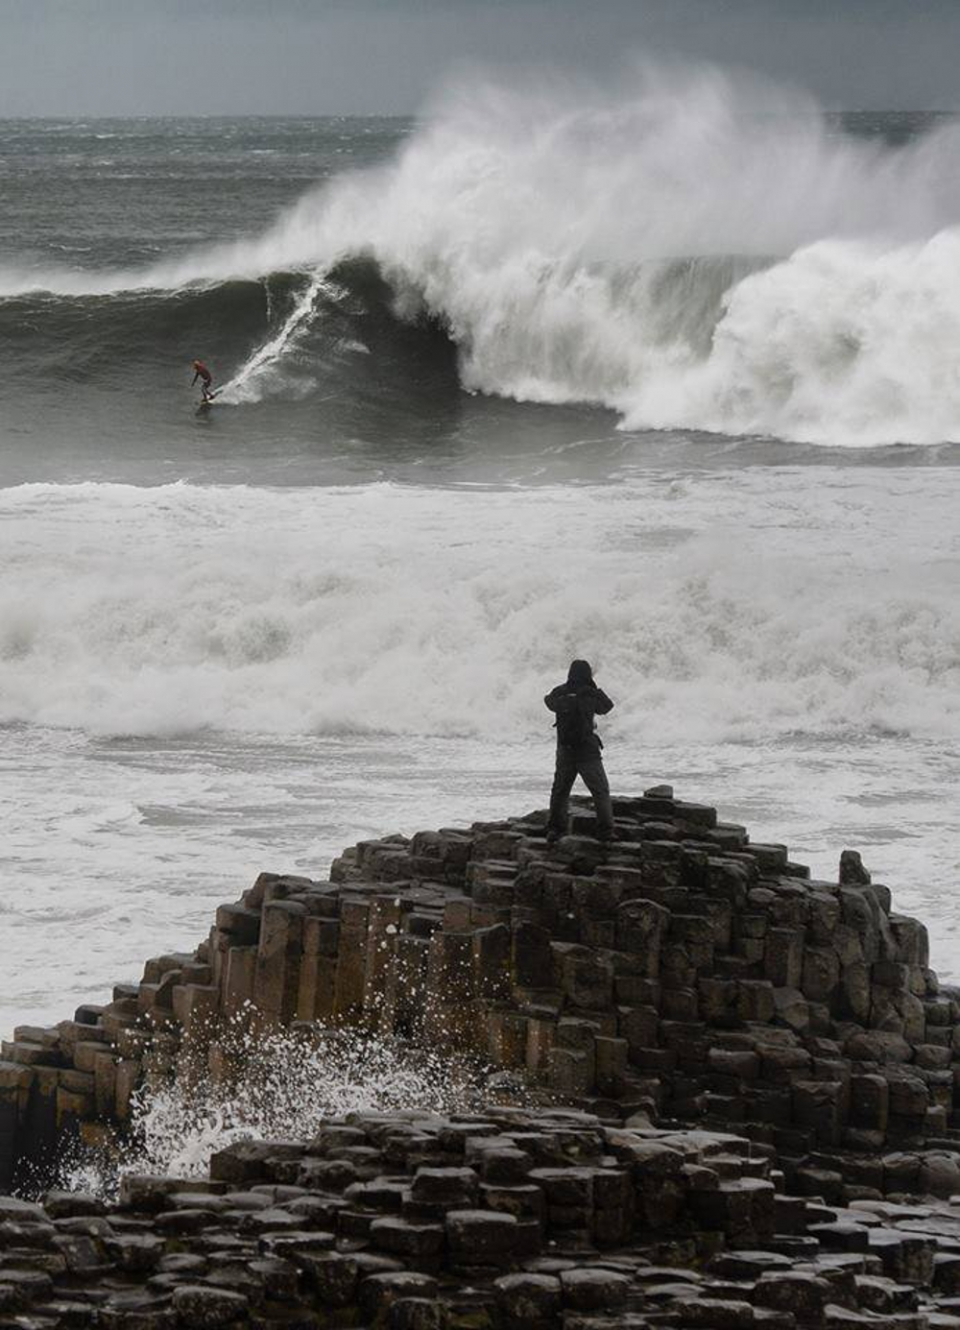 The geology wasn't the only attraction this day at the Giant's Causeway, Northern Ireland.  Rider: Al Menie